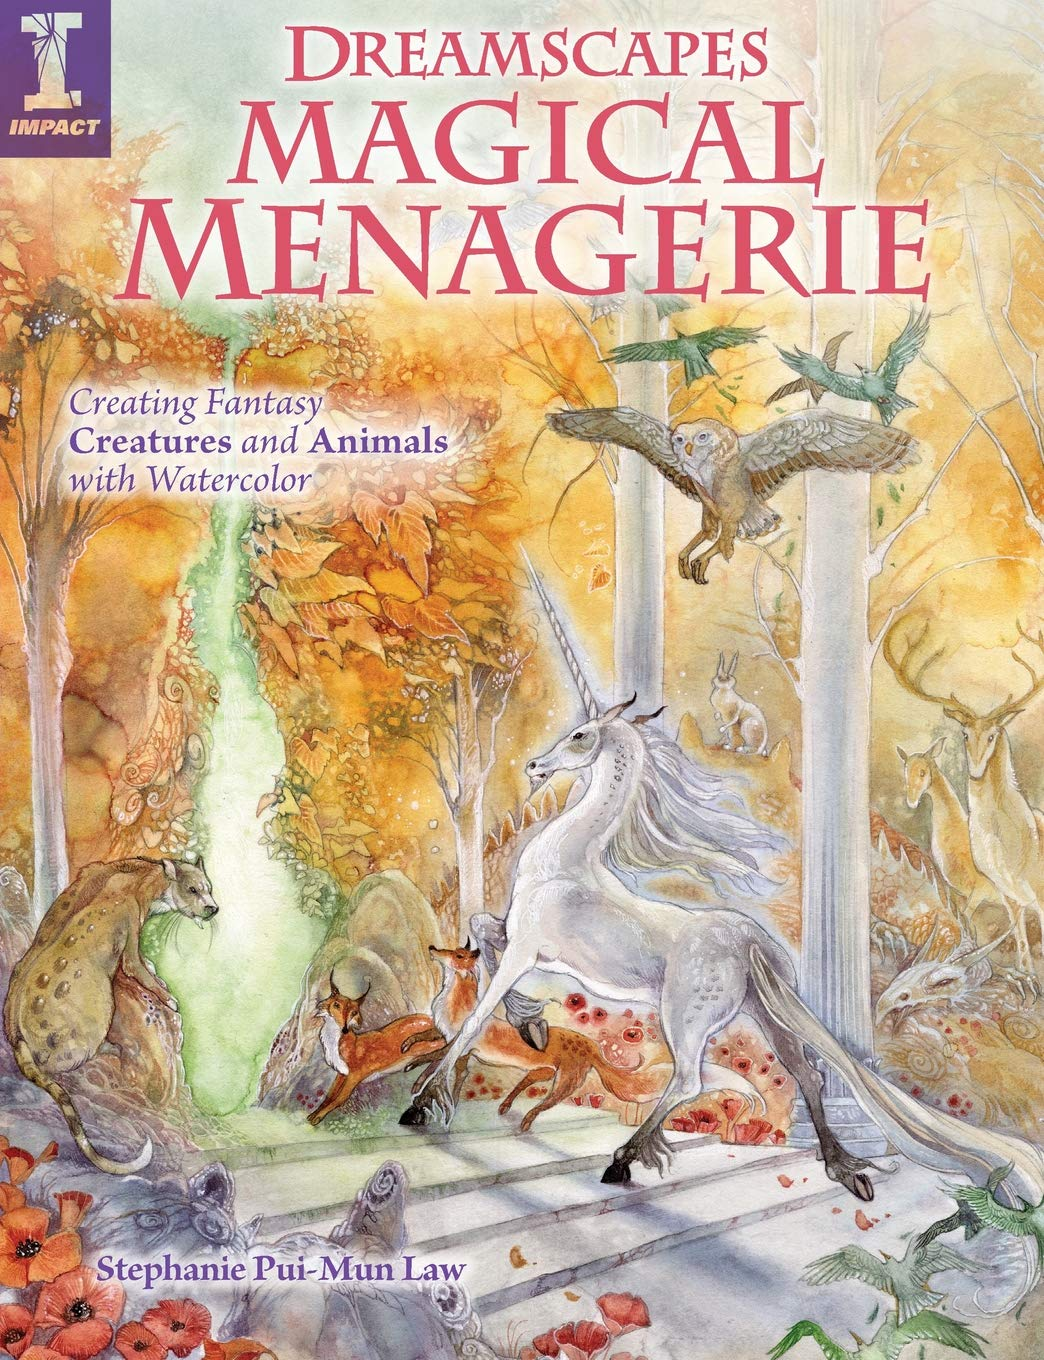 Read Online Dreamscapes Magical Menagerie: Creating Fantasy Creatures and Animals with Watercolor ebook